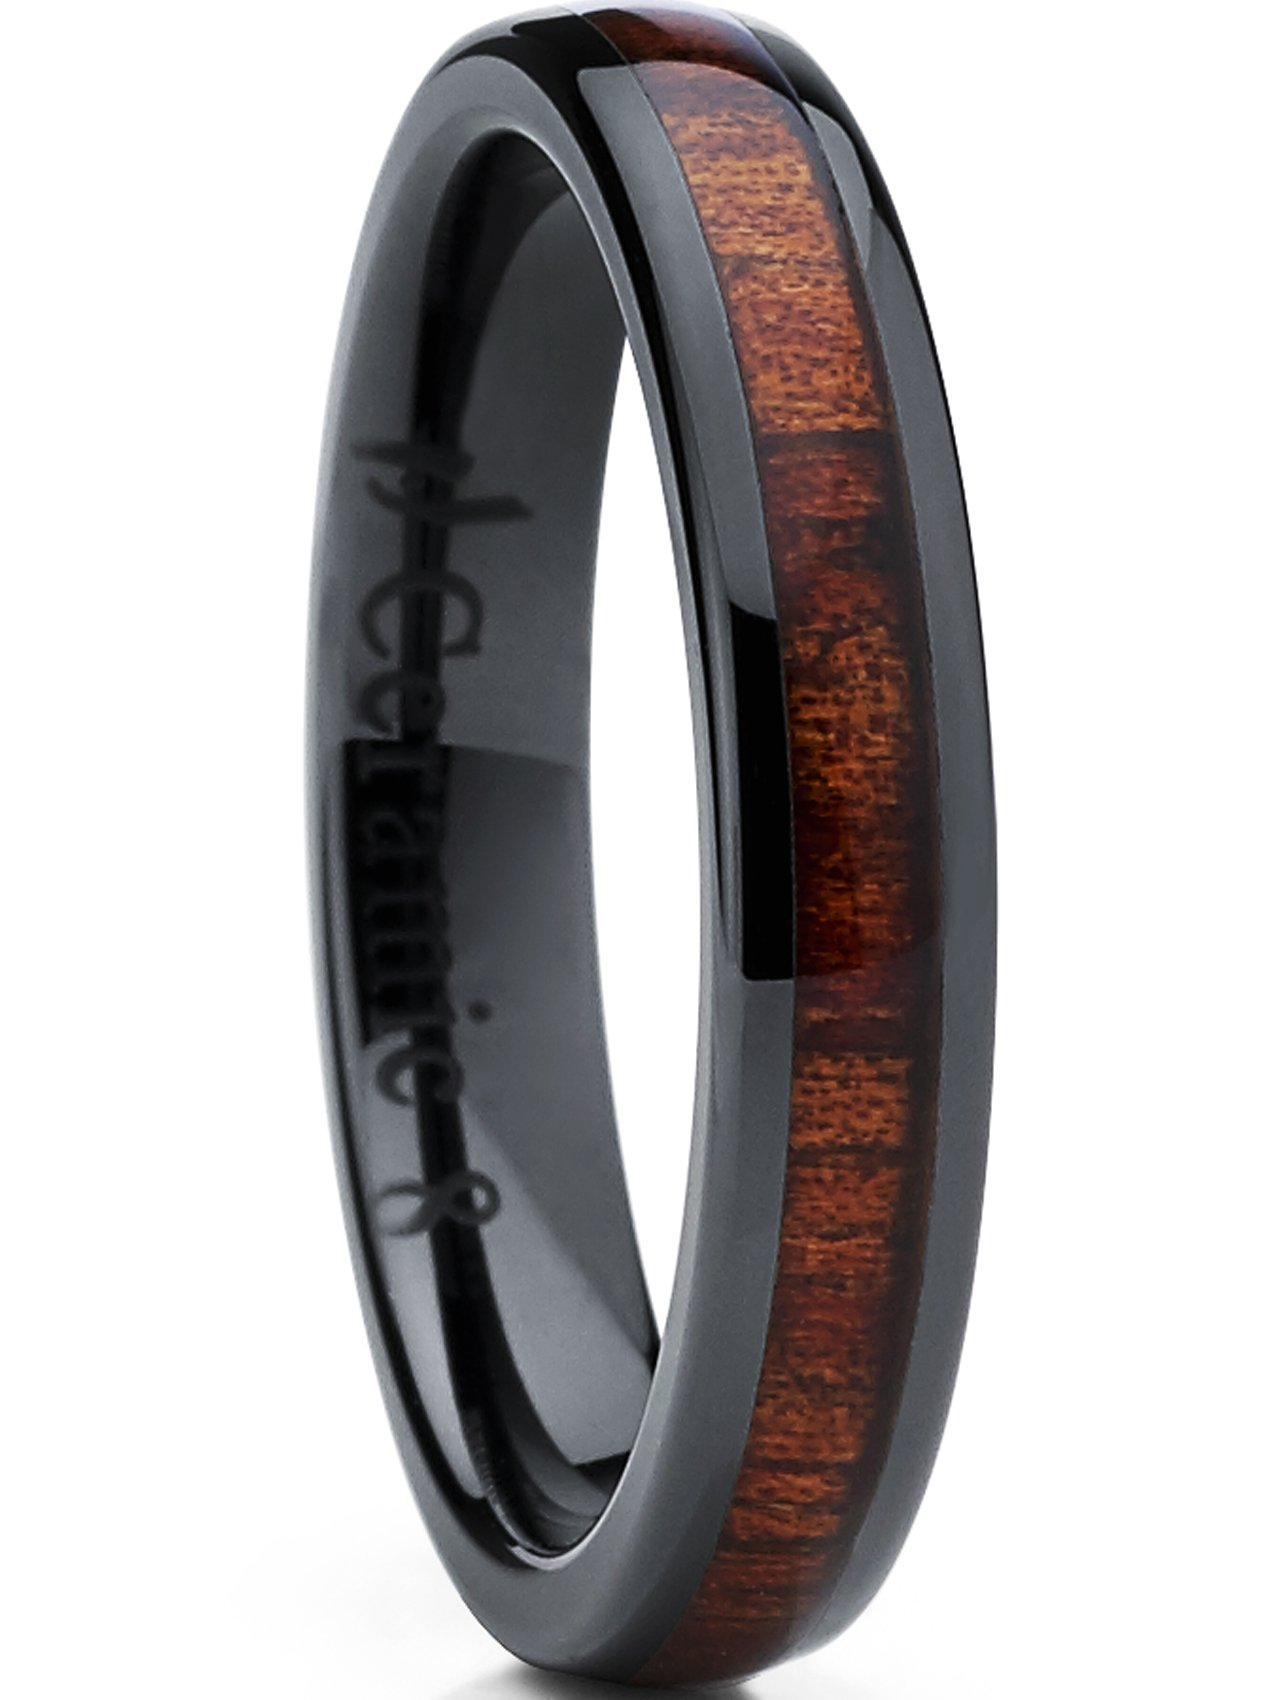 Metal Masters Co. Womens Black Ceramic Dome Wedding Band Ring with Real Koa Wood Inlay 4mm, Comfort Fit SZ 6.5